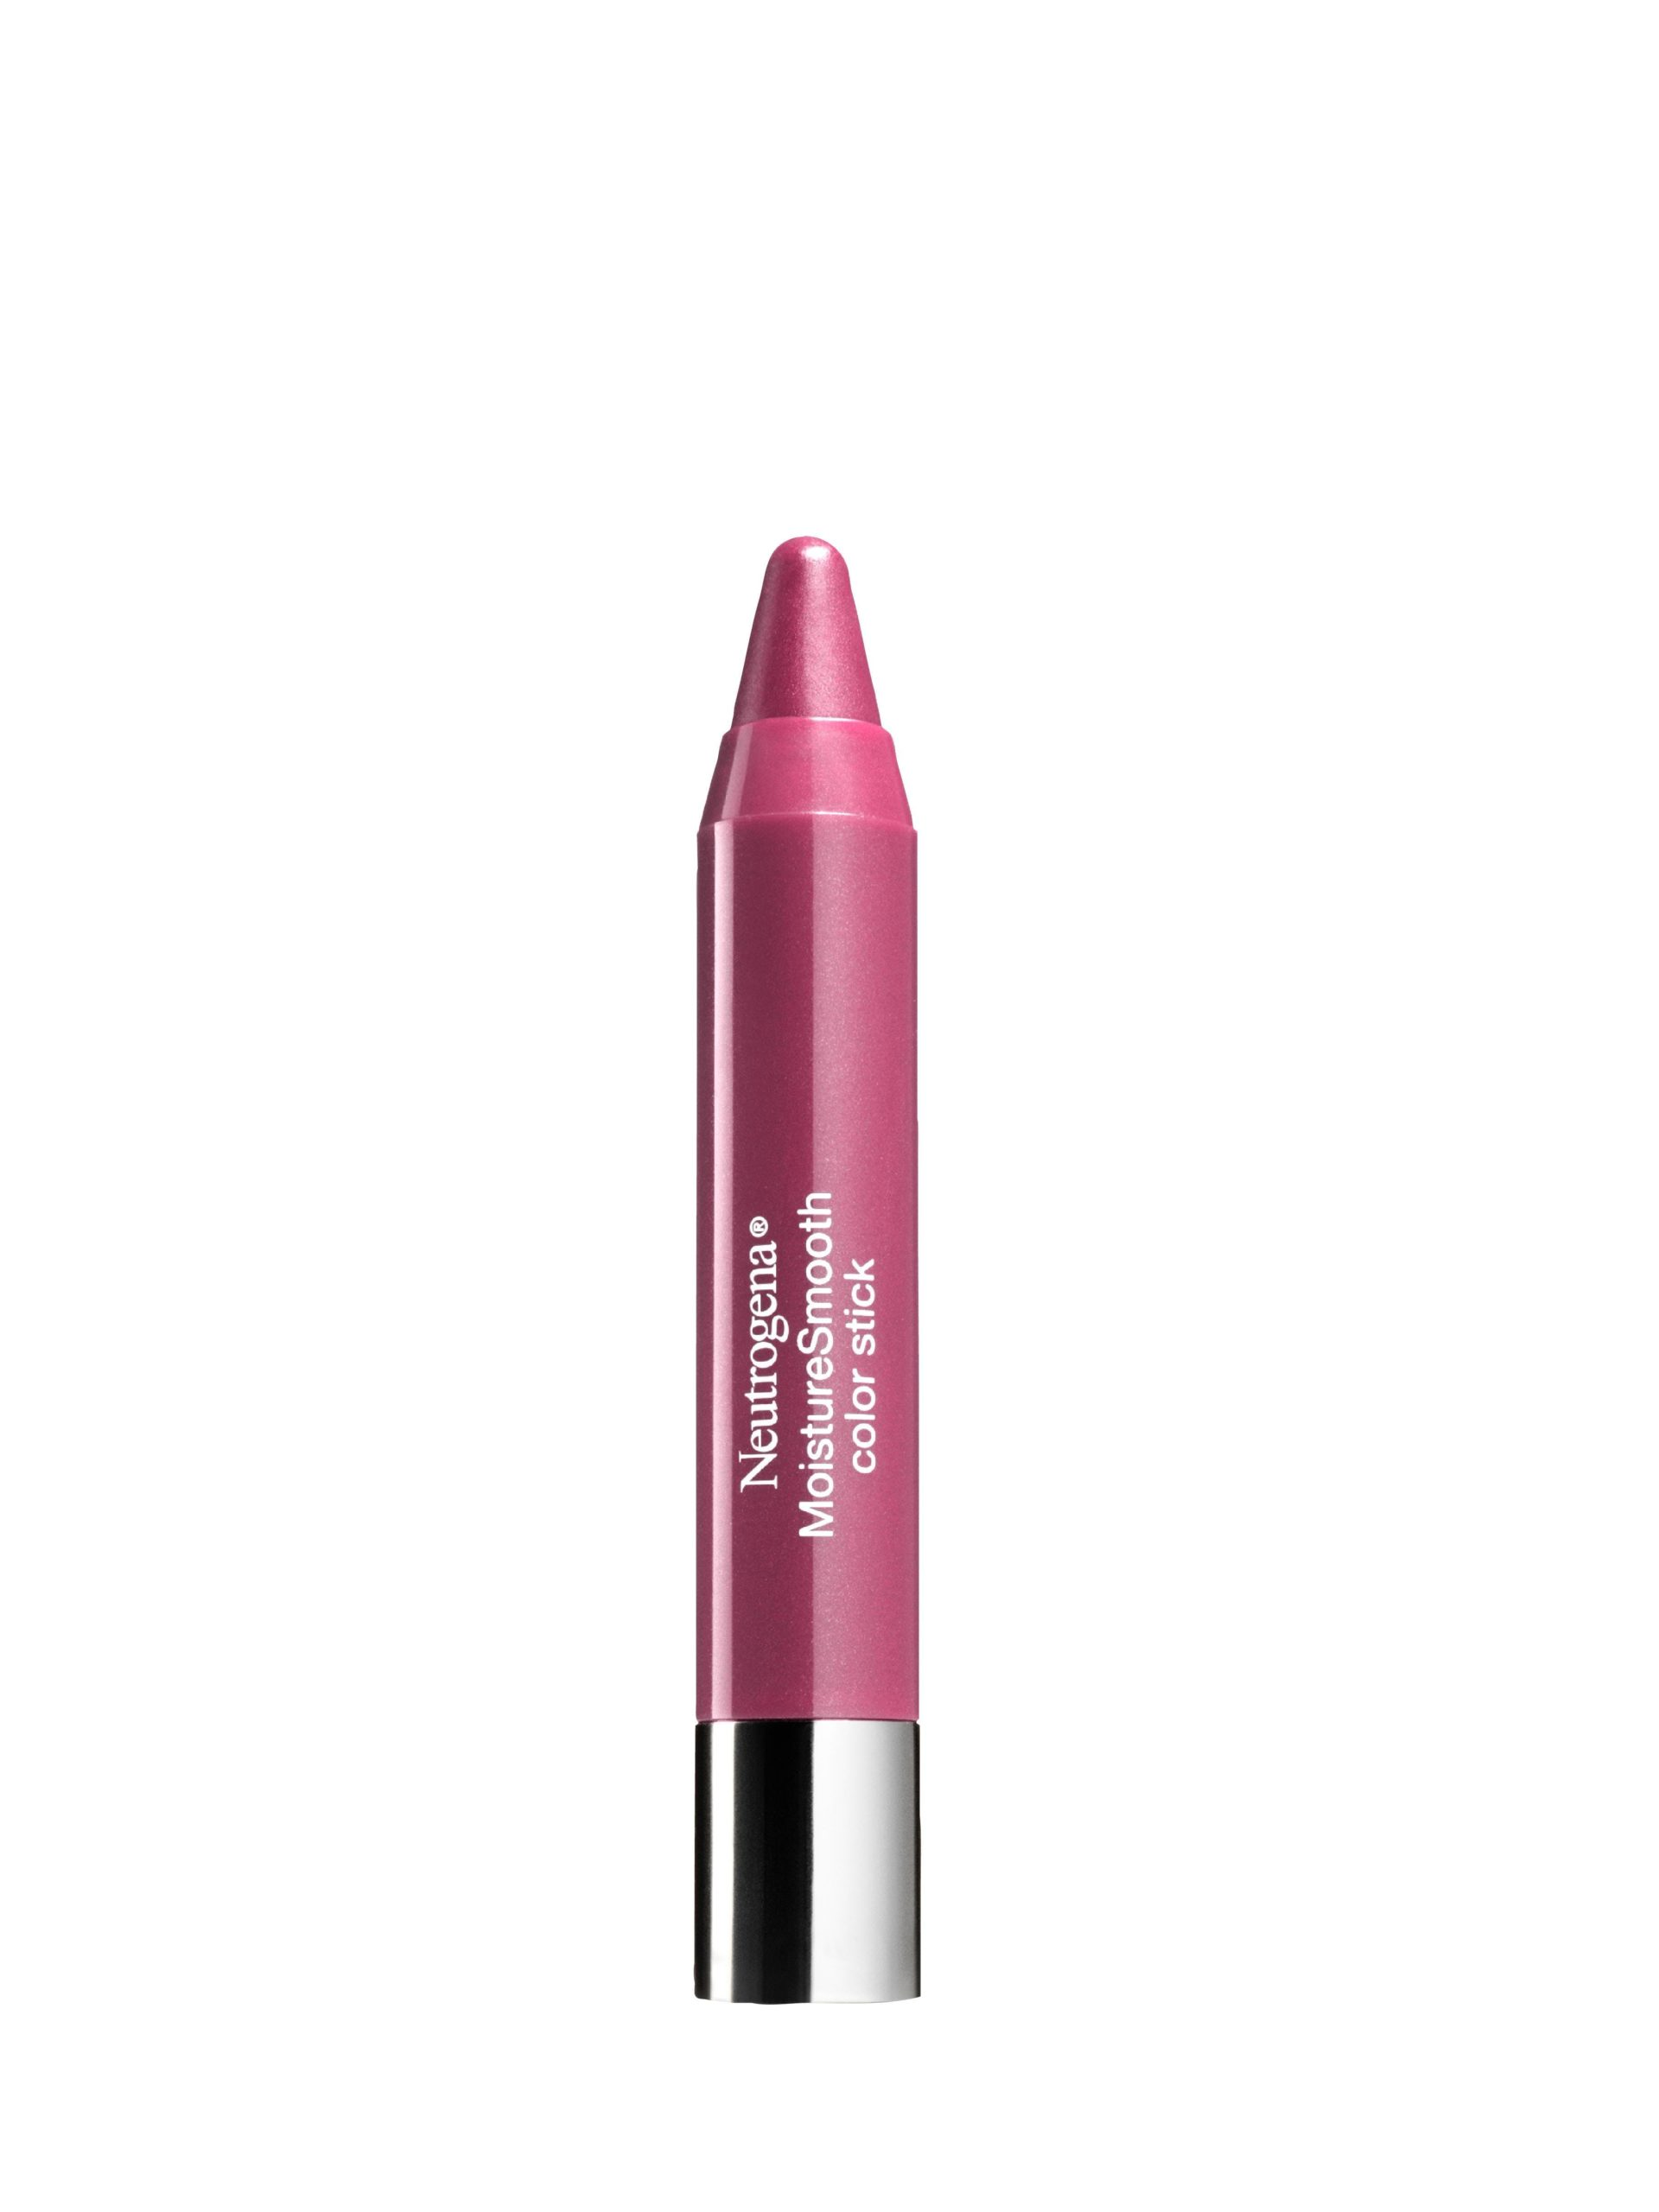 Moisturesmooth Color Stick - Bright Berry